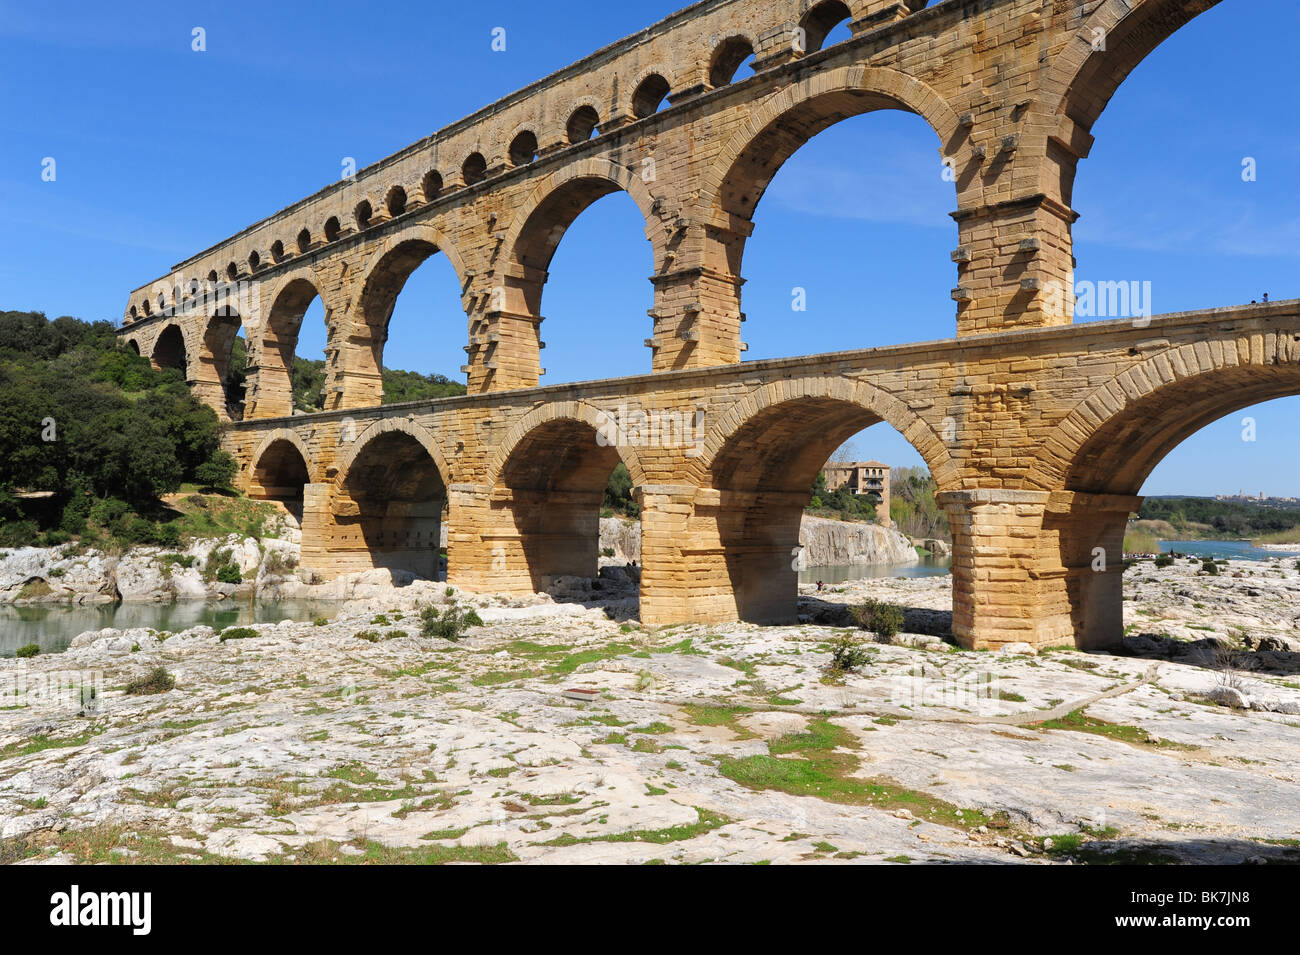 roman aqueducts and architecture